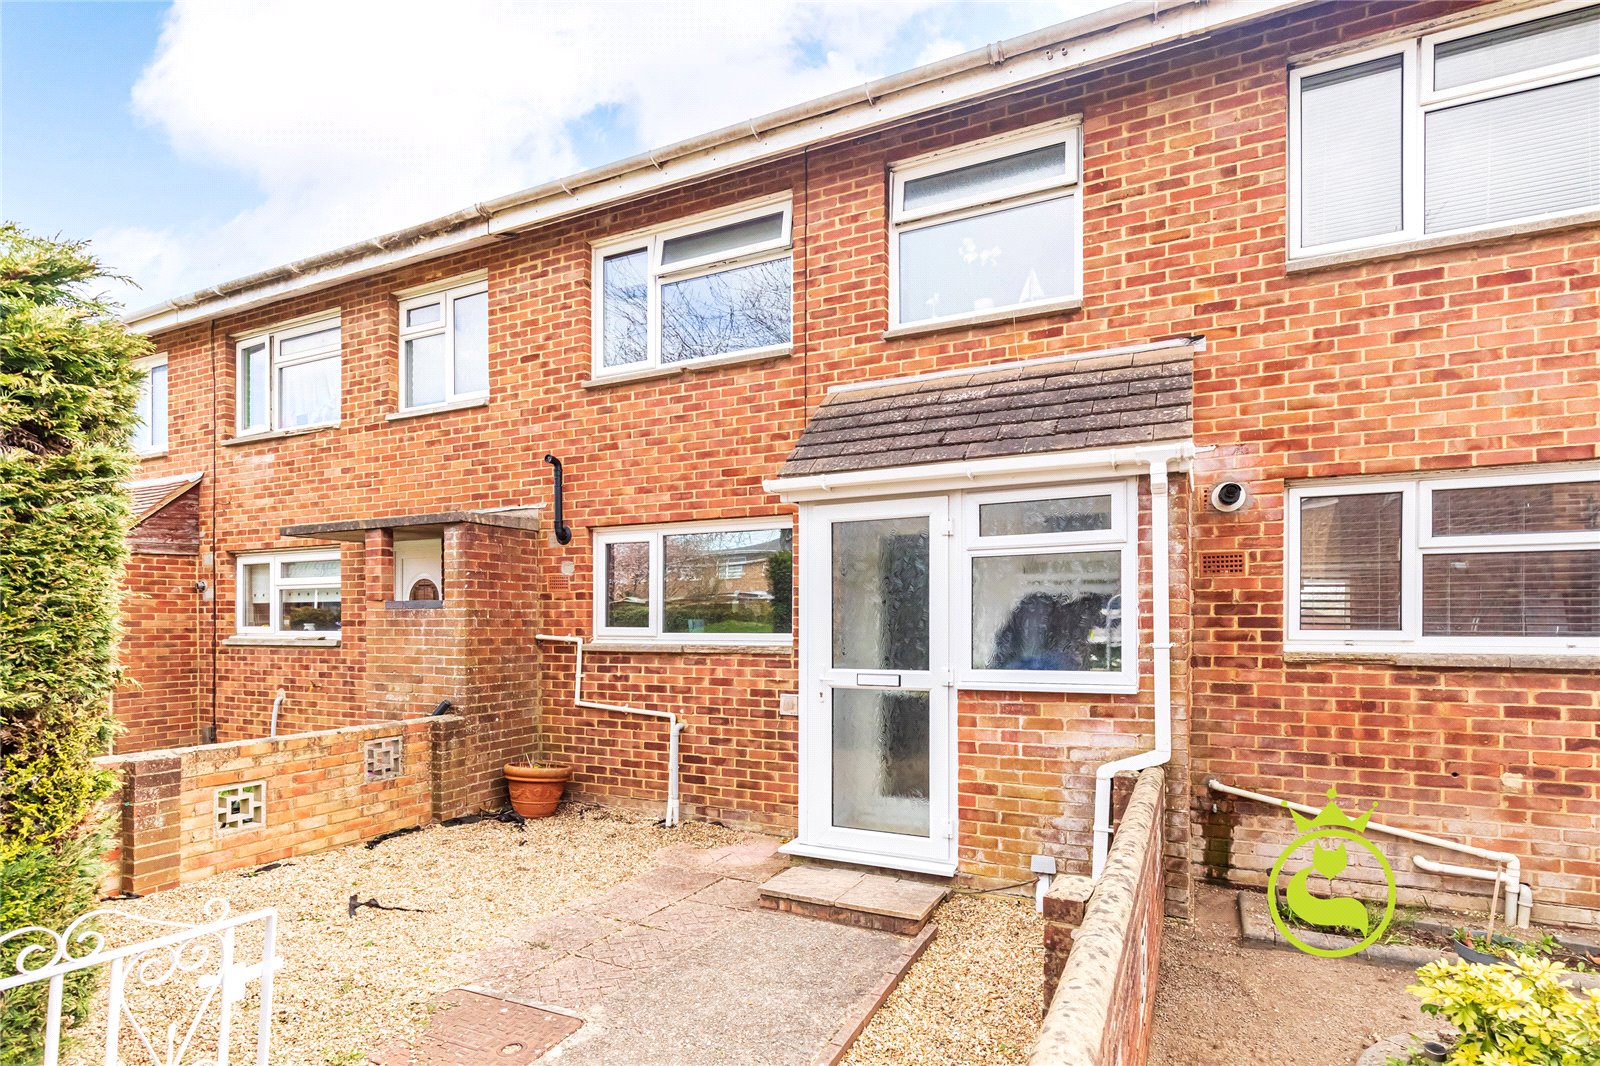 3 bed house for sale in Millfield, Creekmoor, BH17